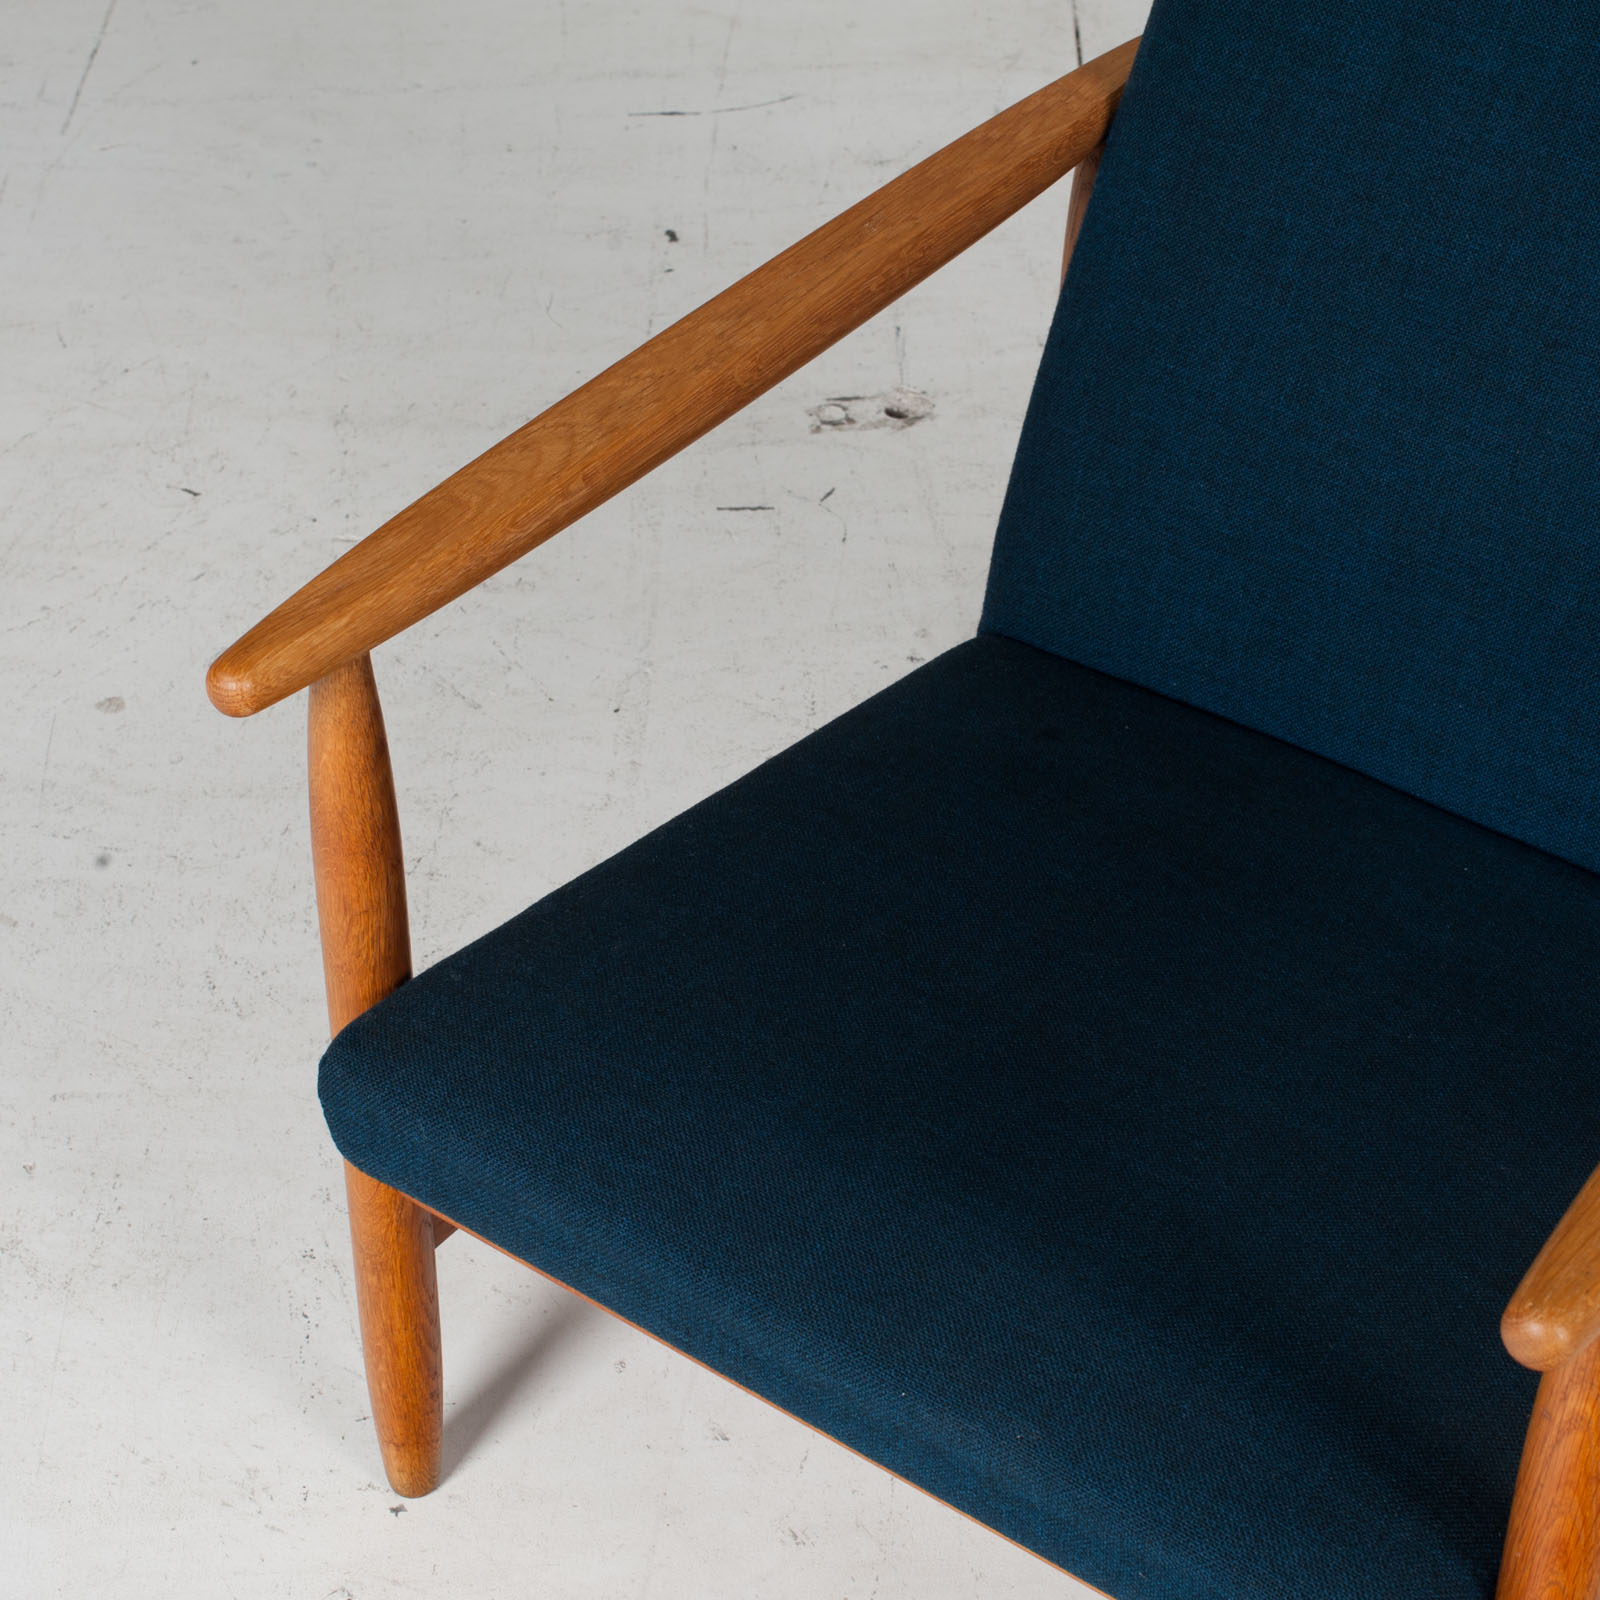 Armchair By Ejvind A. Johansson In Blue Upholstery, 1960s, Denmark5